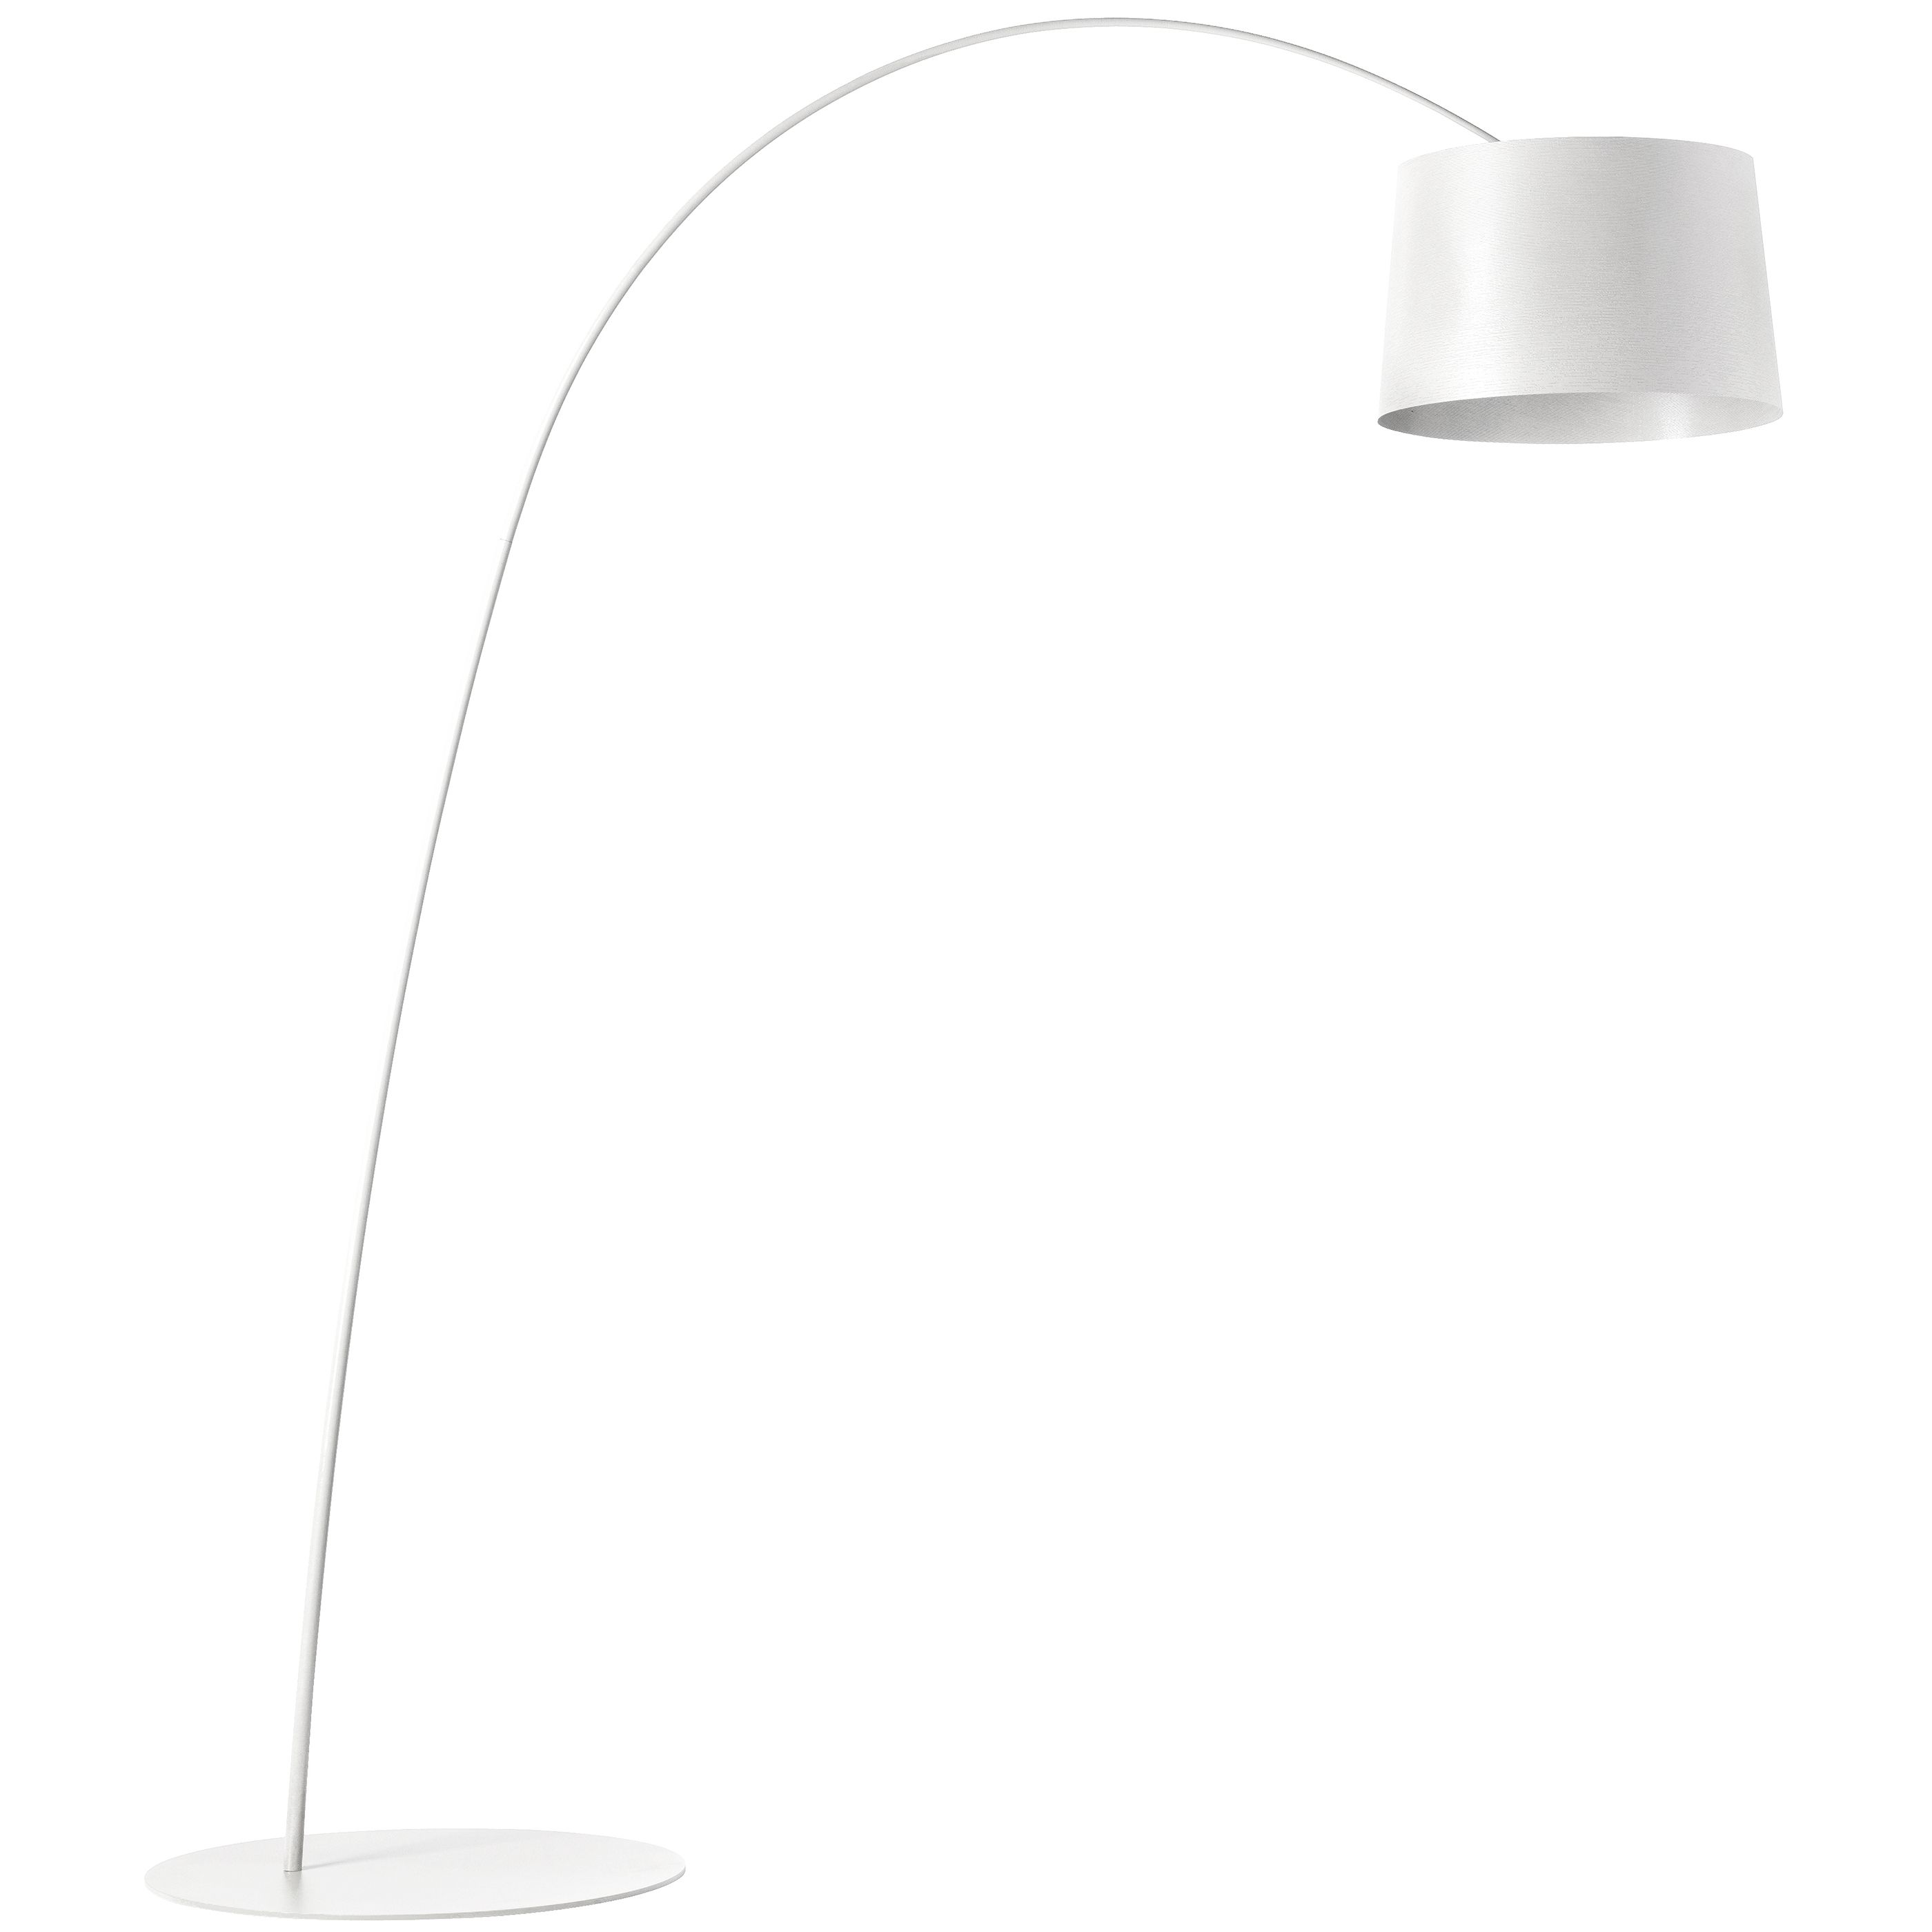 Foscarini Twiggy vloerlamp LED wit